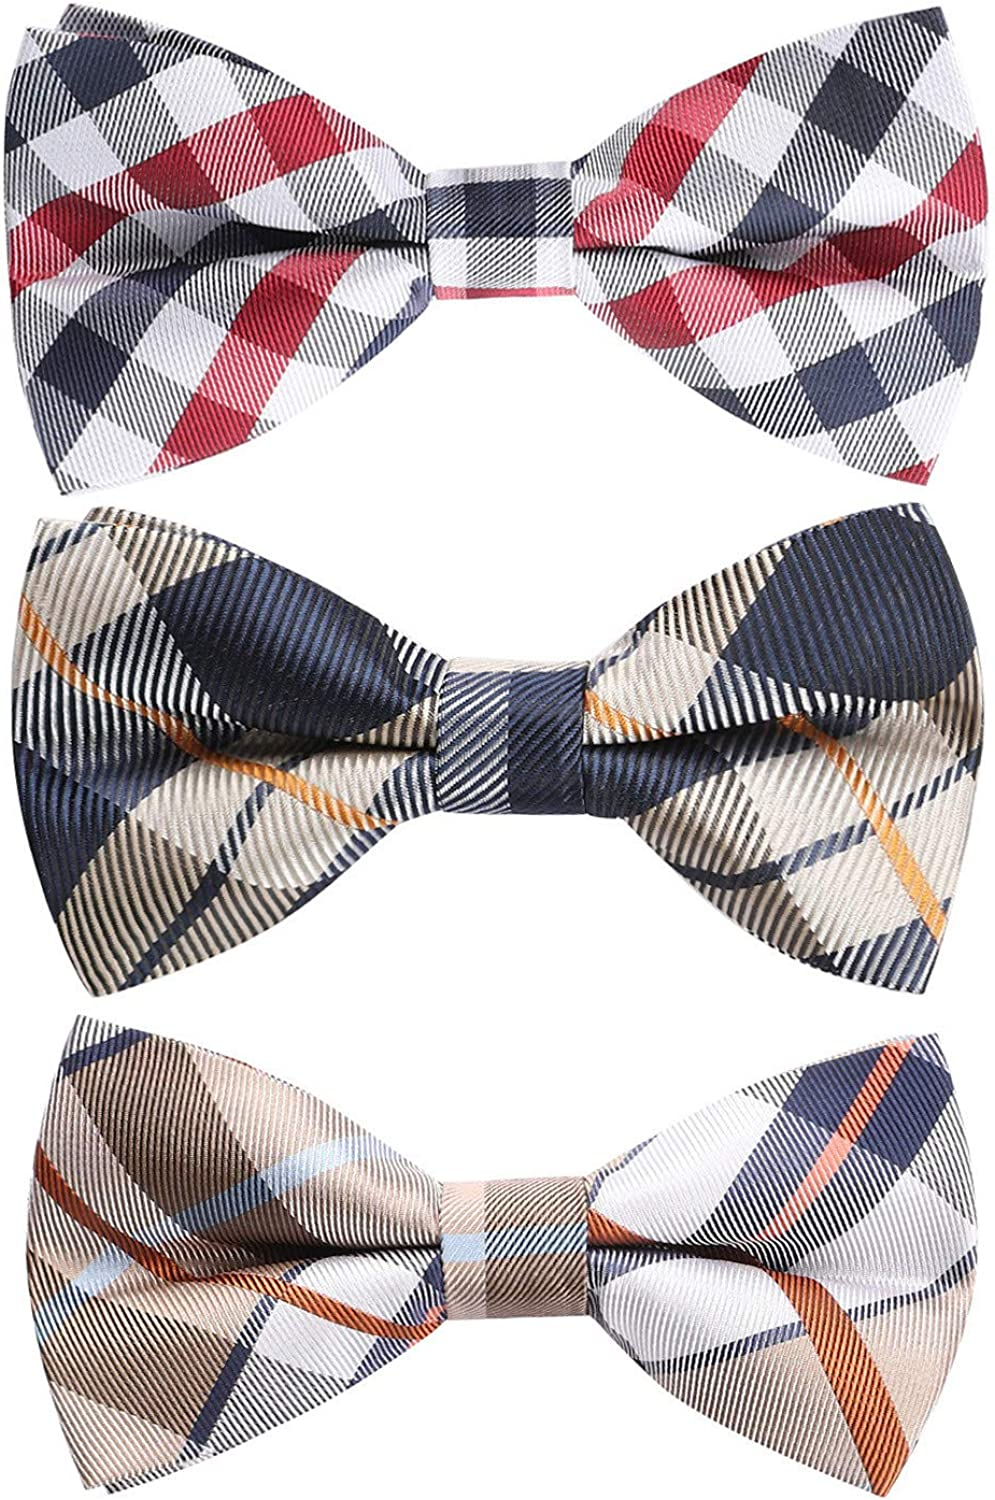 Ranking TOP7 HISDERN 3 6 Super sale Pack Mixed Design Pre-tied Adjustable with Bow Ties